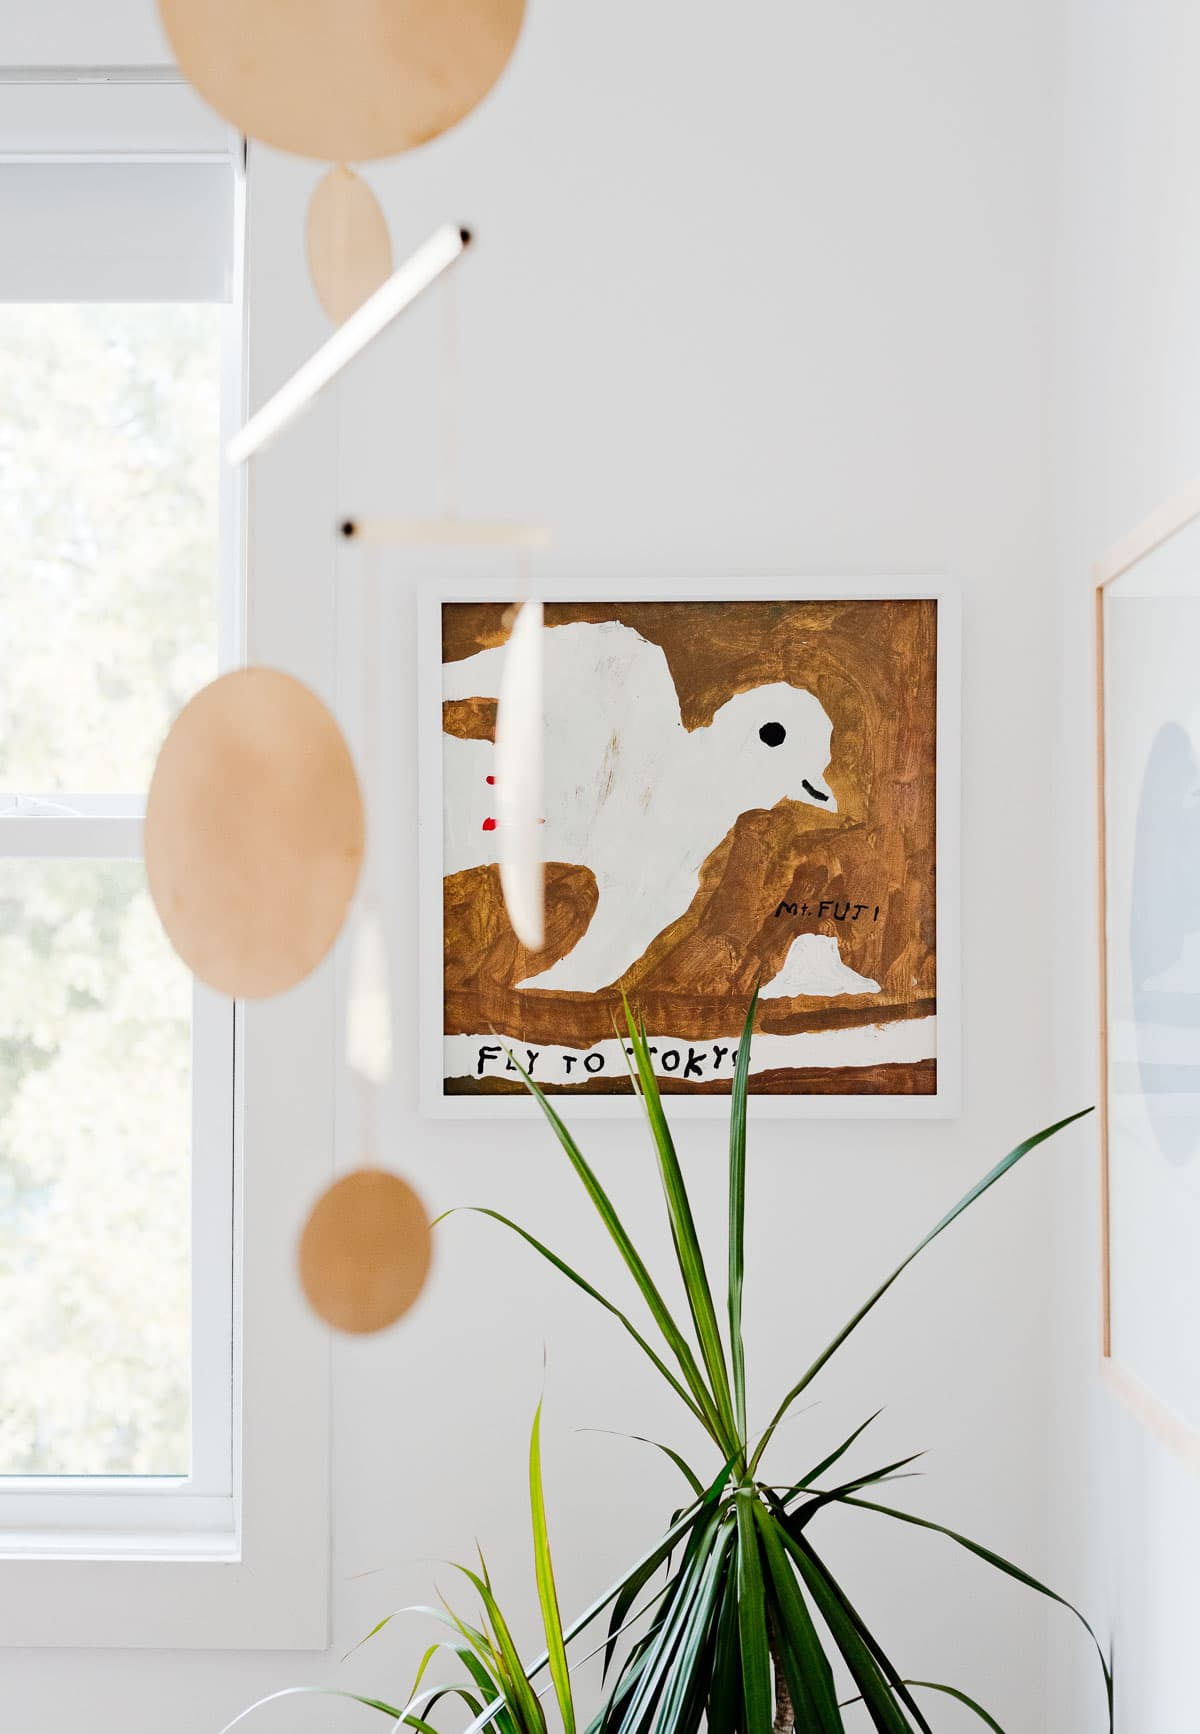 Painting of a bird that says 'fly to Tokyo', hanging in a child's nursery.